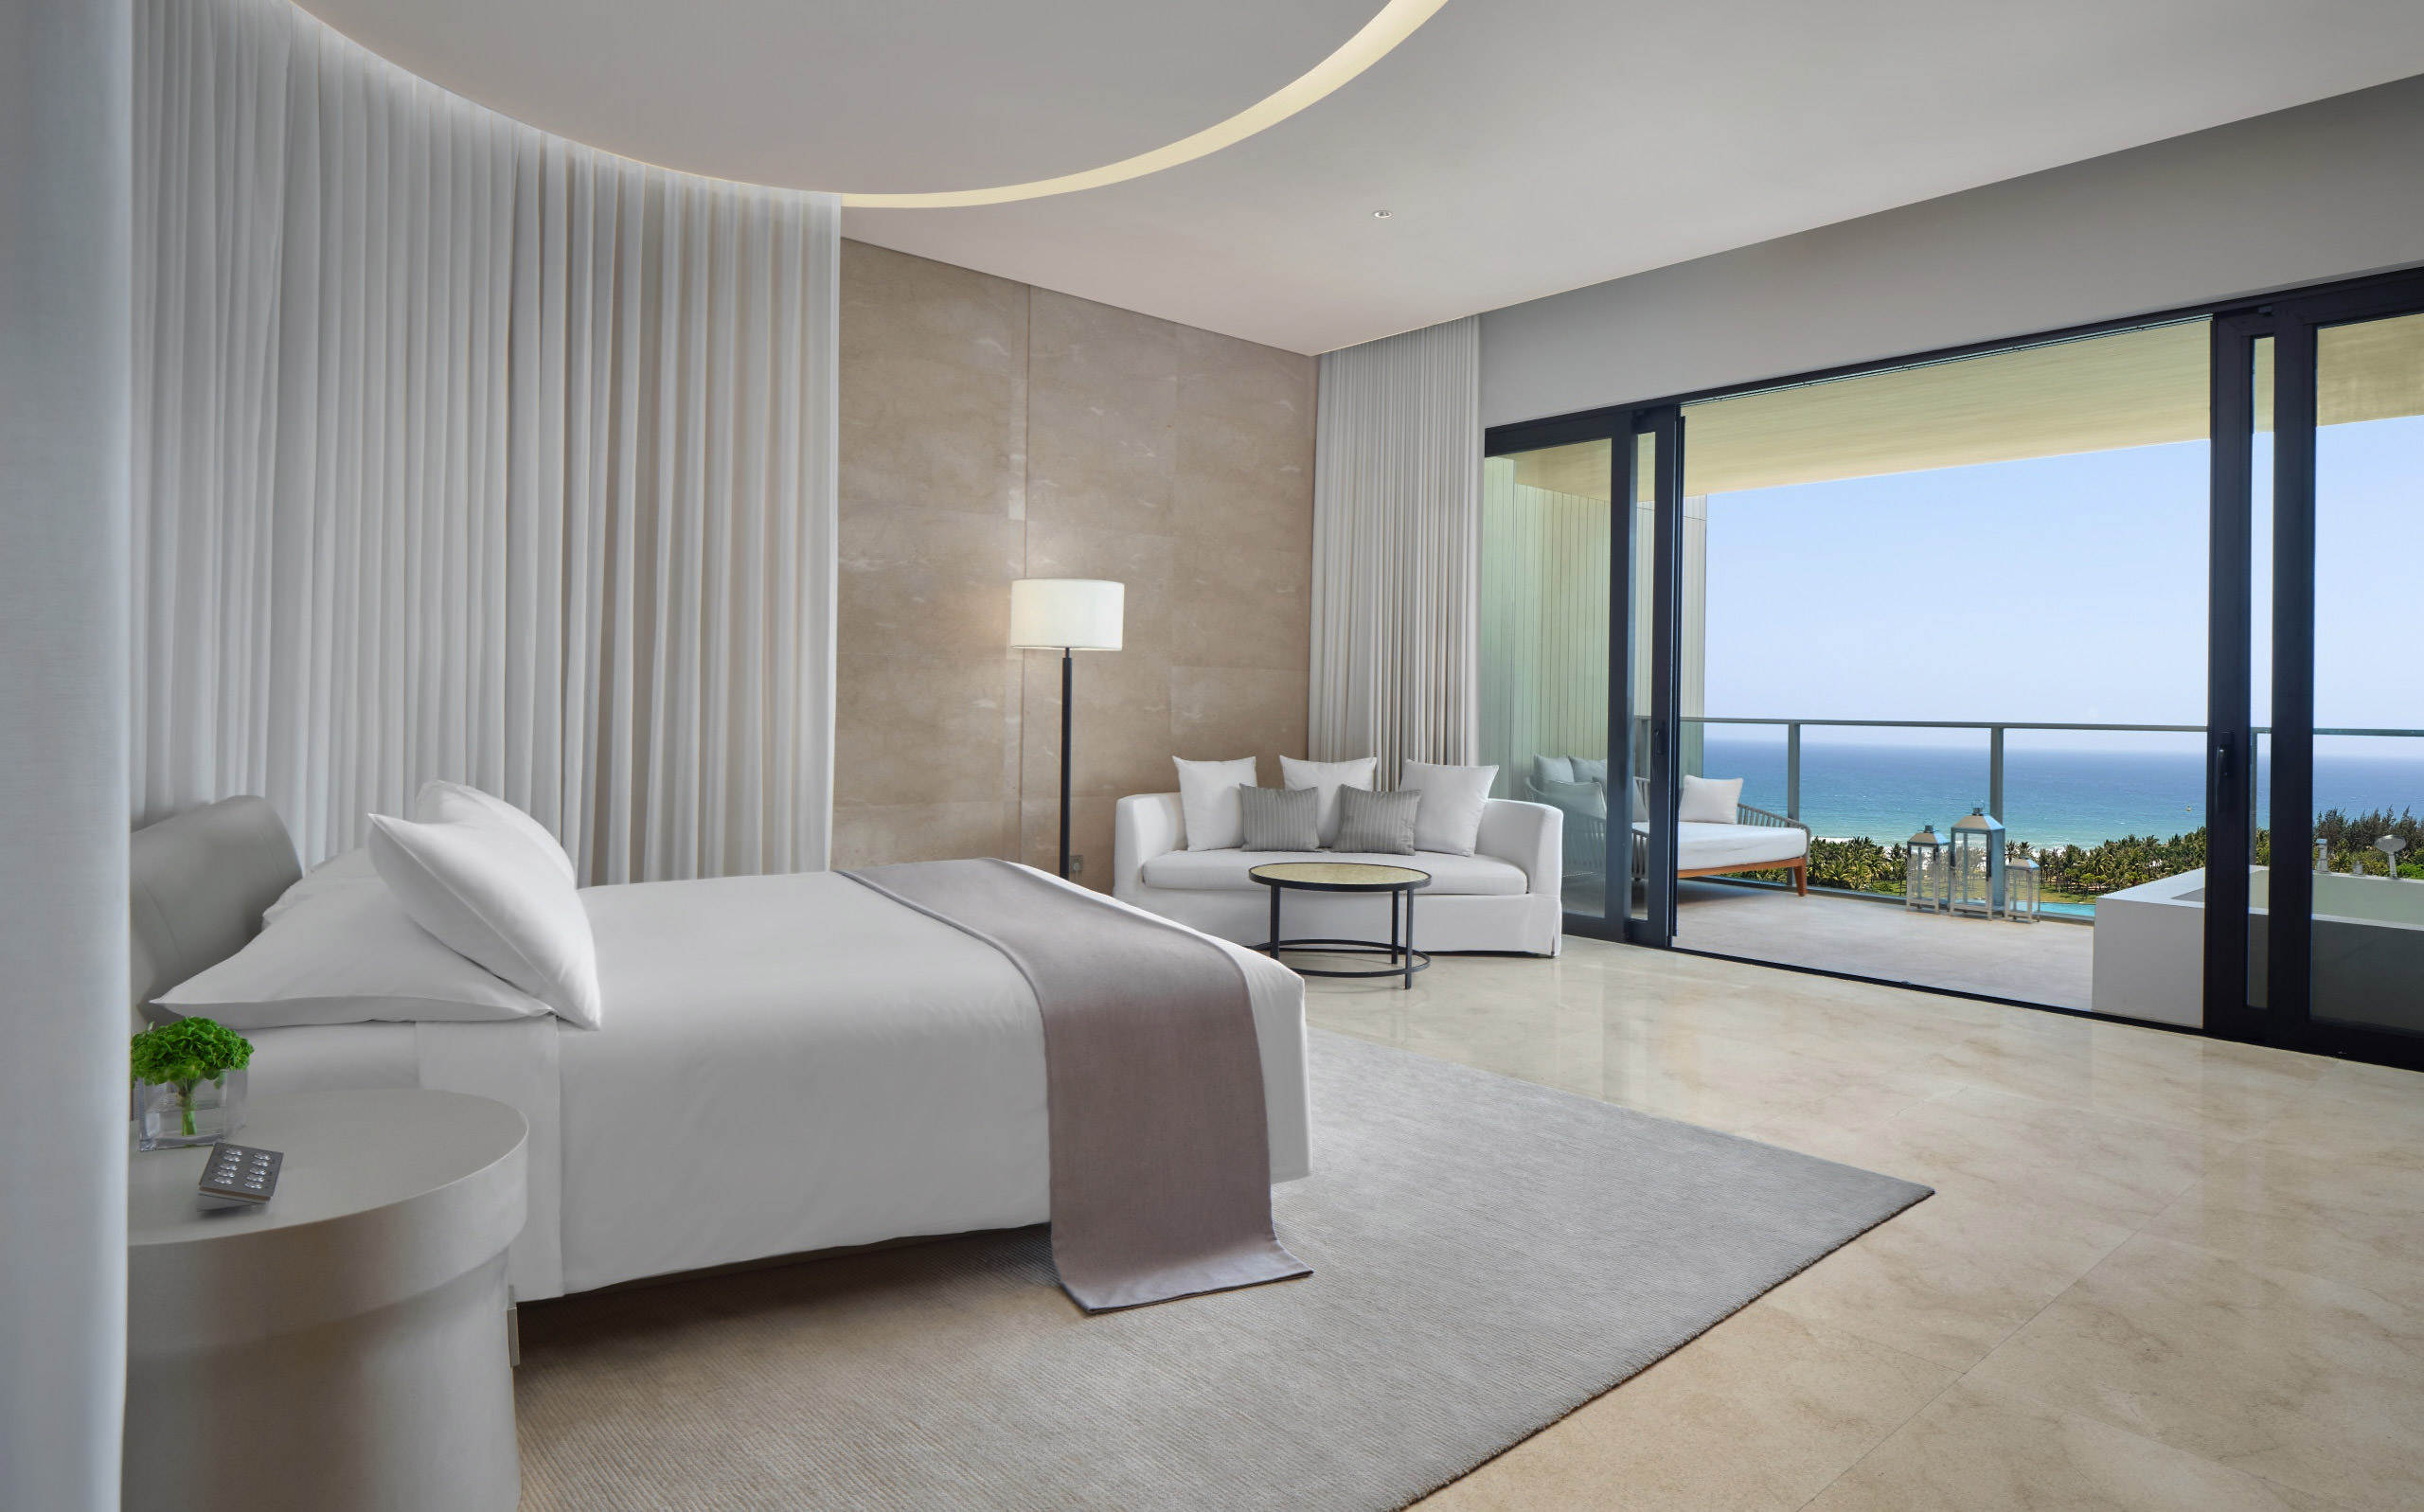 Loft hotel room showing bed with tan bed sash and white curtain and tan carpet. Sea view hotel room overlooking sanya bay at the edition sanya hotel.